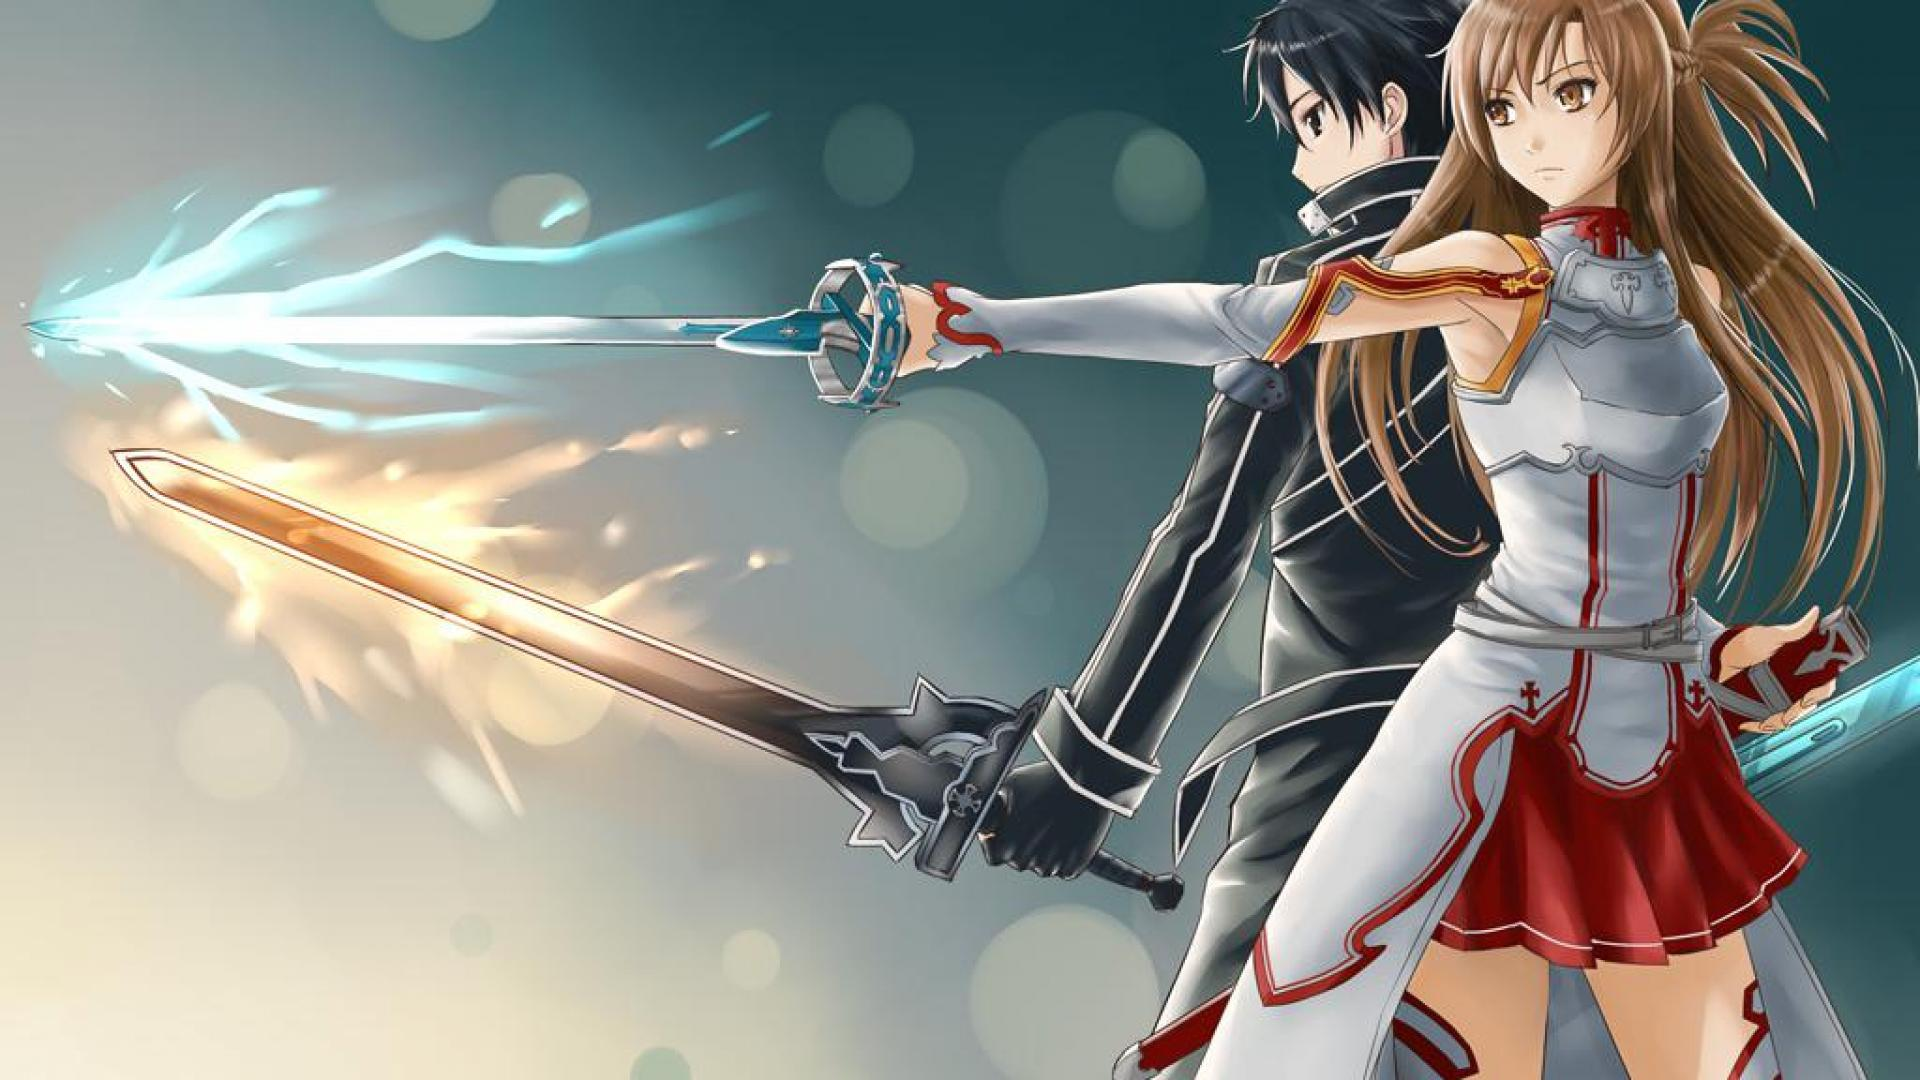 Foto Kirito Dan Asuna download - sword art online asuna and kirito swords (#373269